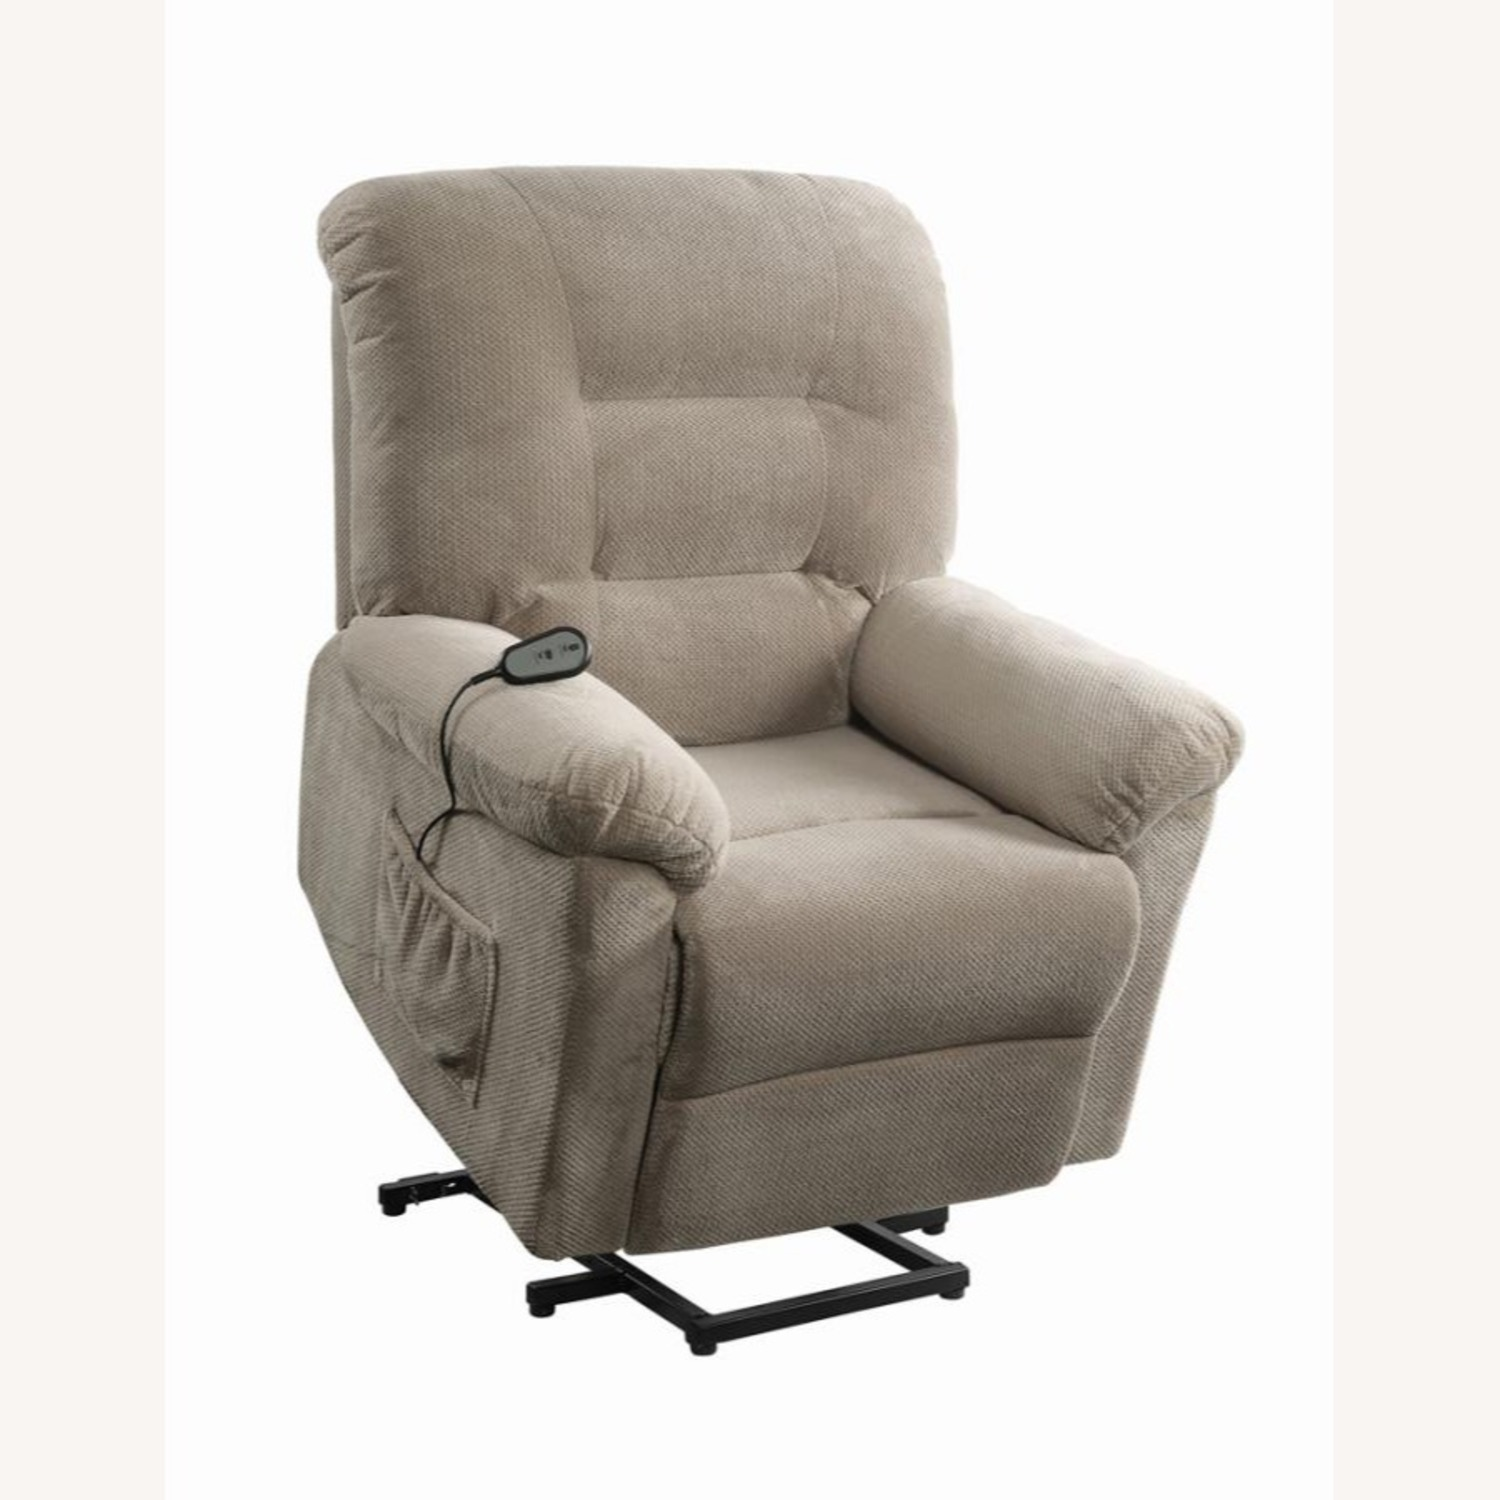 Power Lift Recliner In Beige Chenille Fabric - image-2